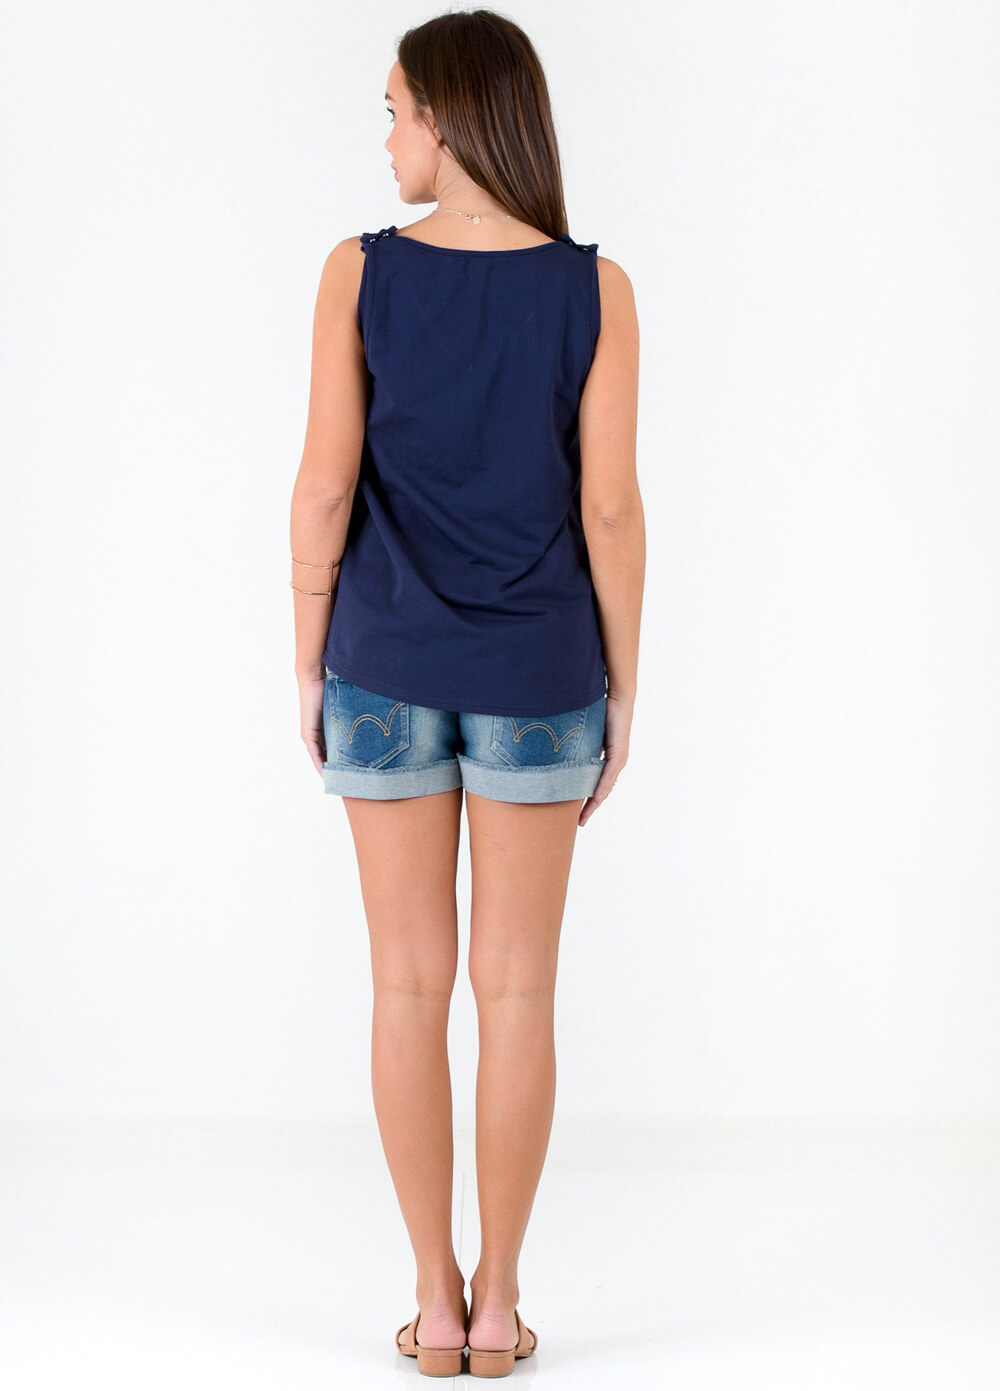 Nathan French Terry Postpartum Nursing Tank Top in Navy by Trimester